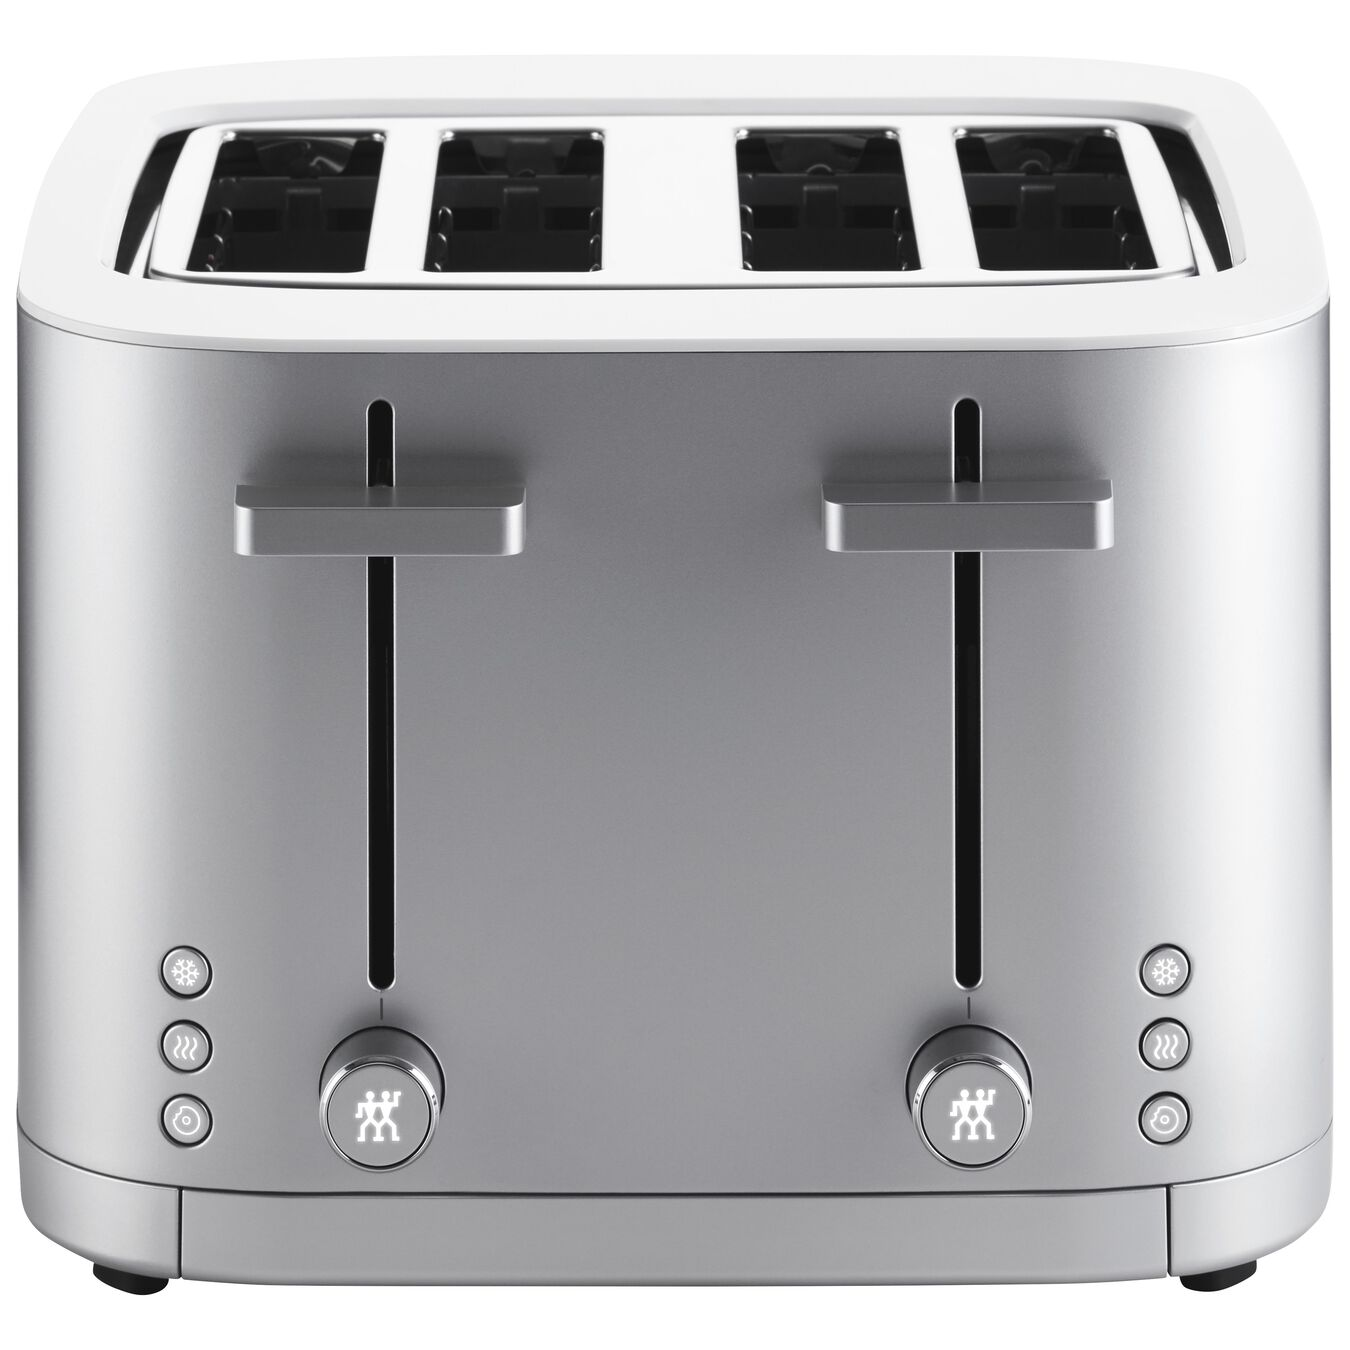 4-slot toaster,,large 3